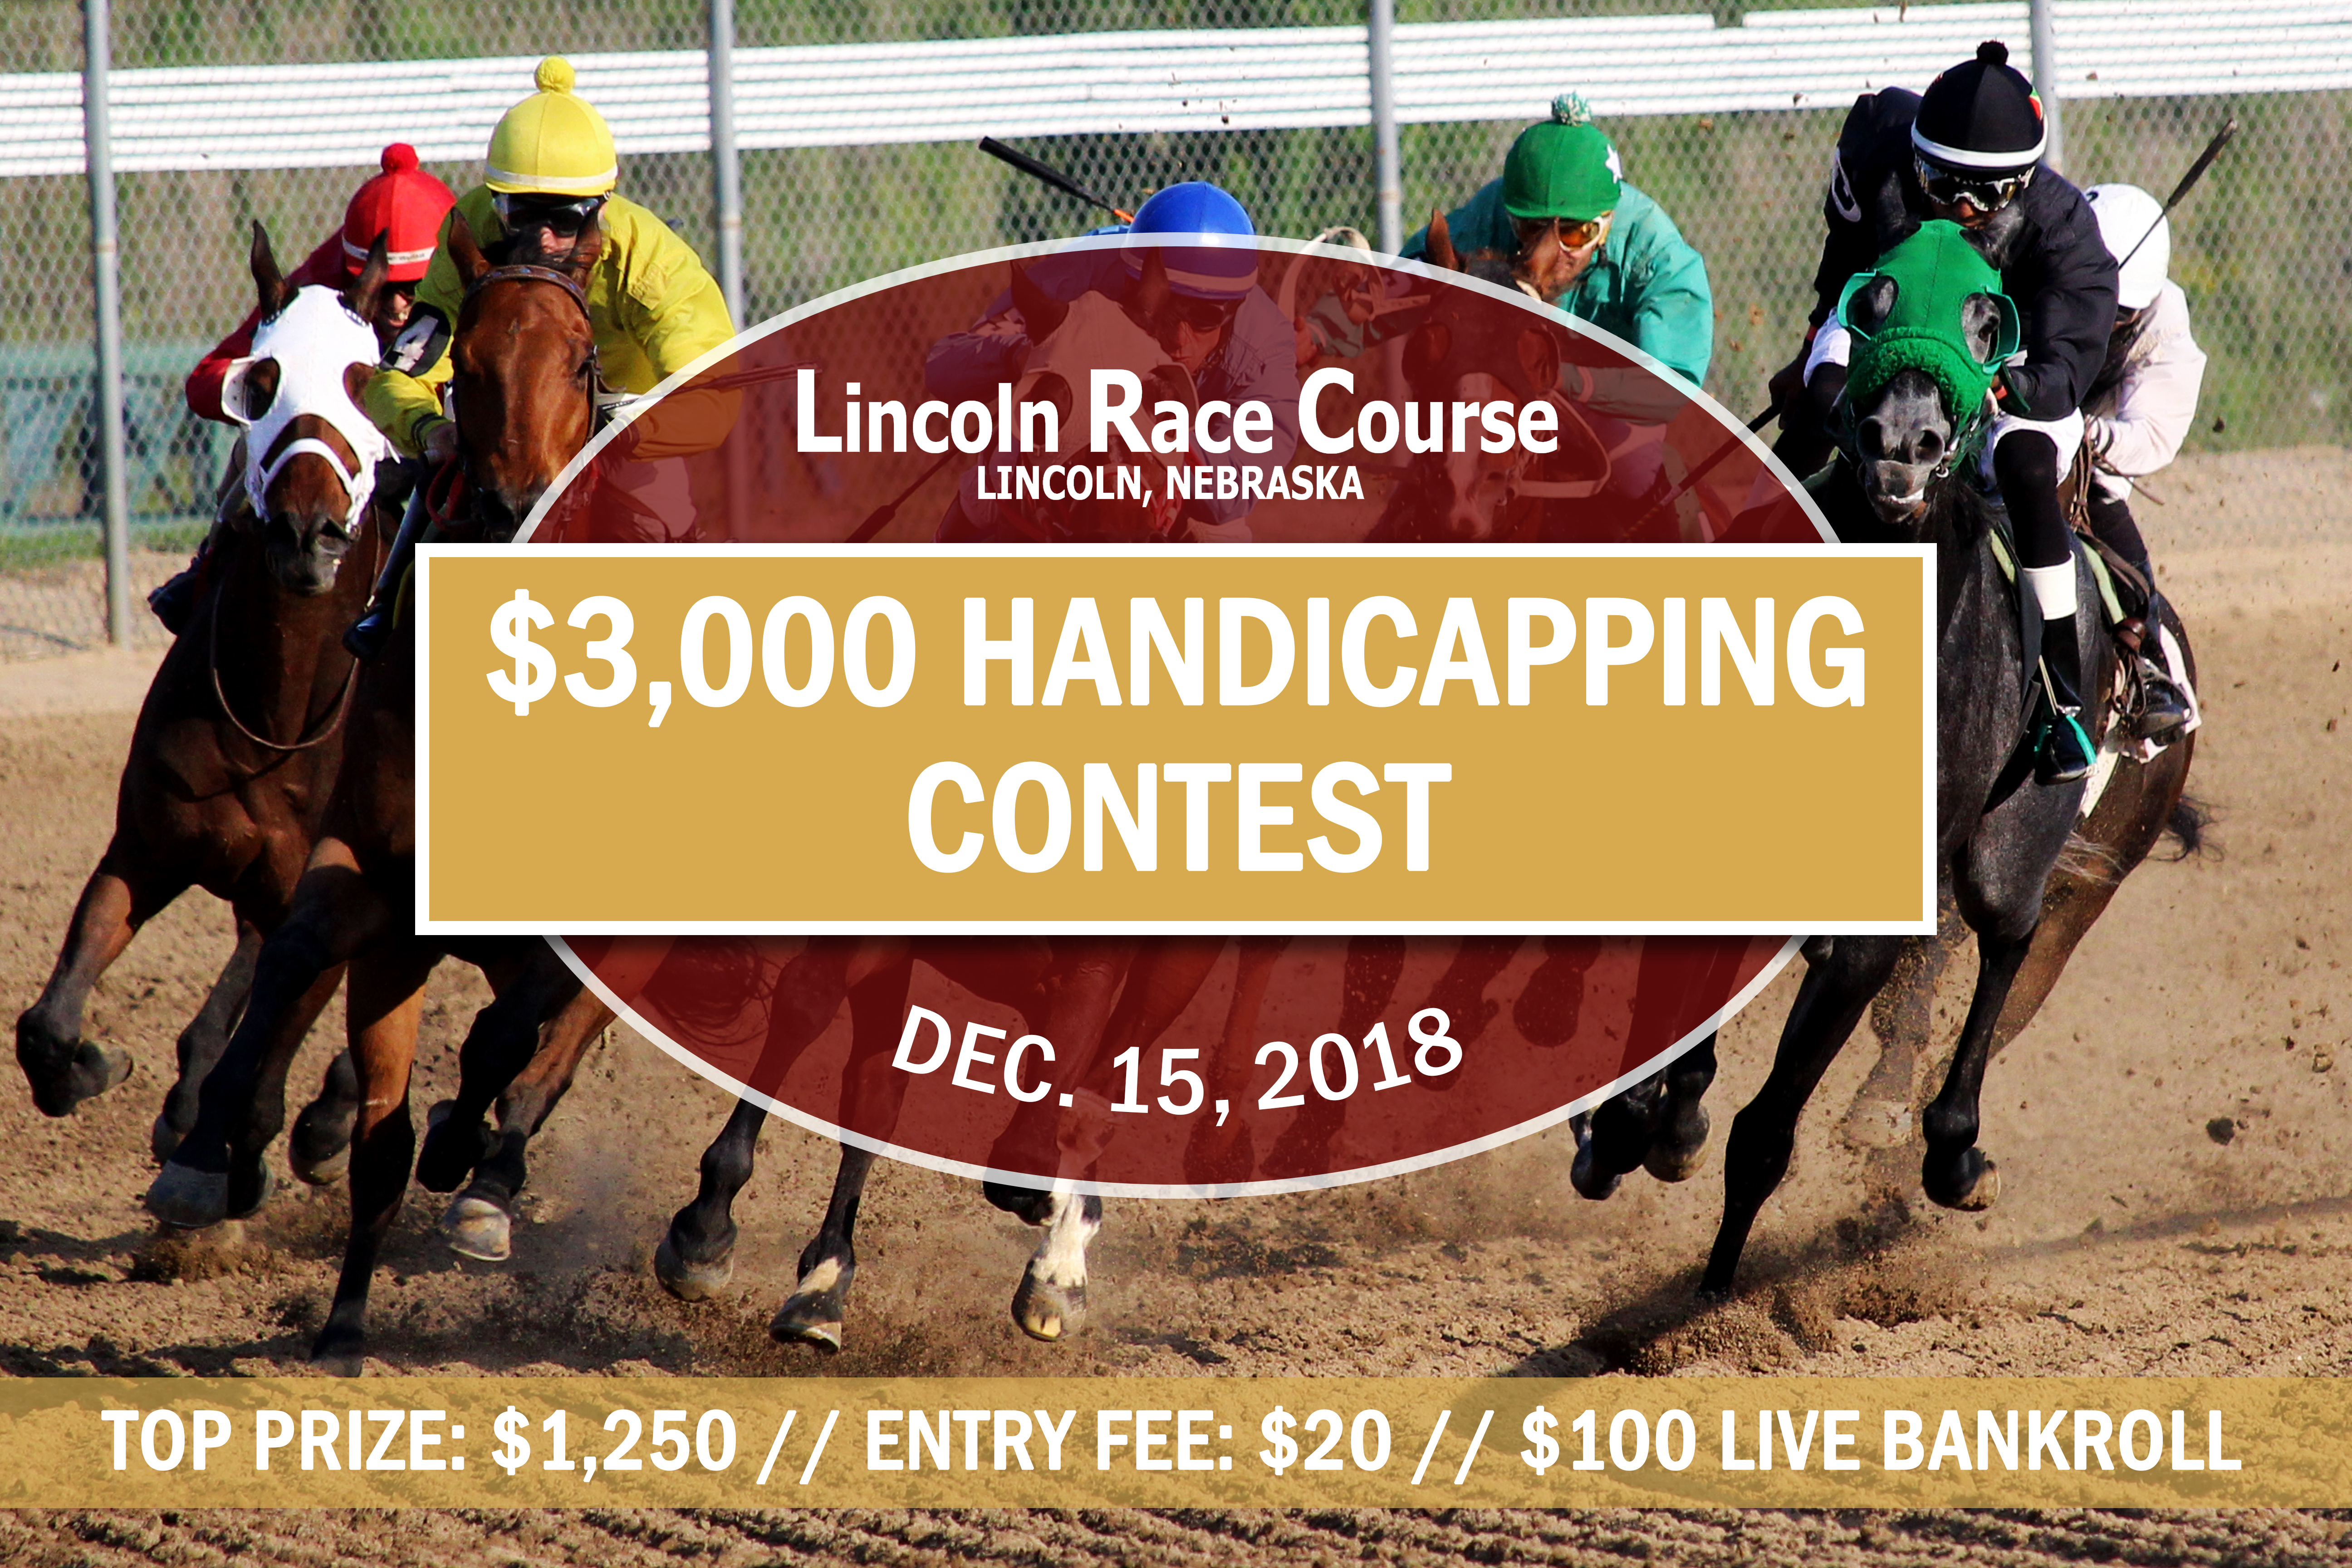 Handicapping dec 15inside LRC.jpg